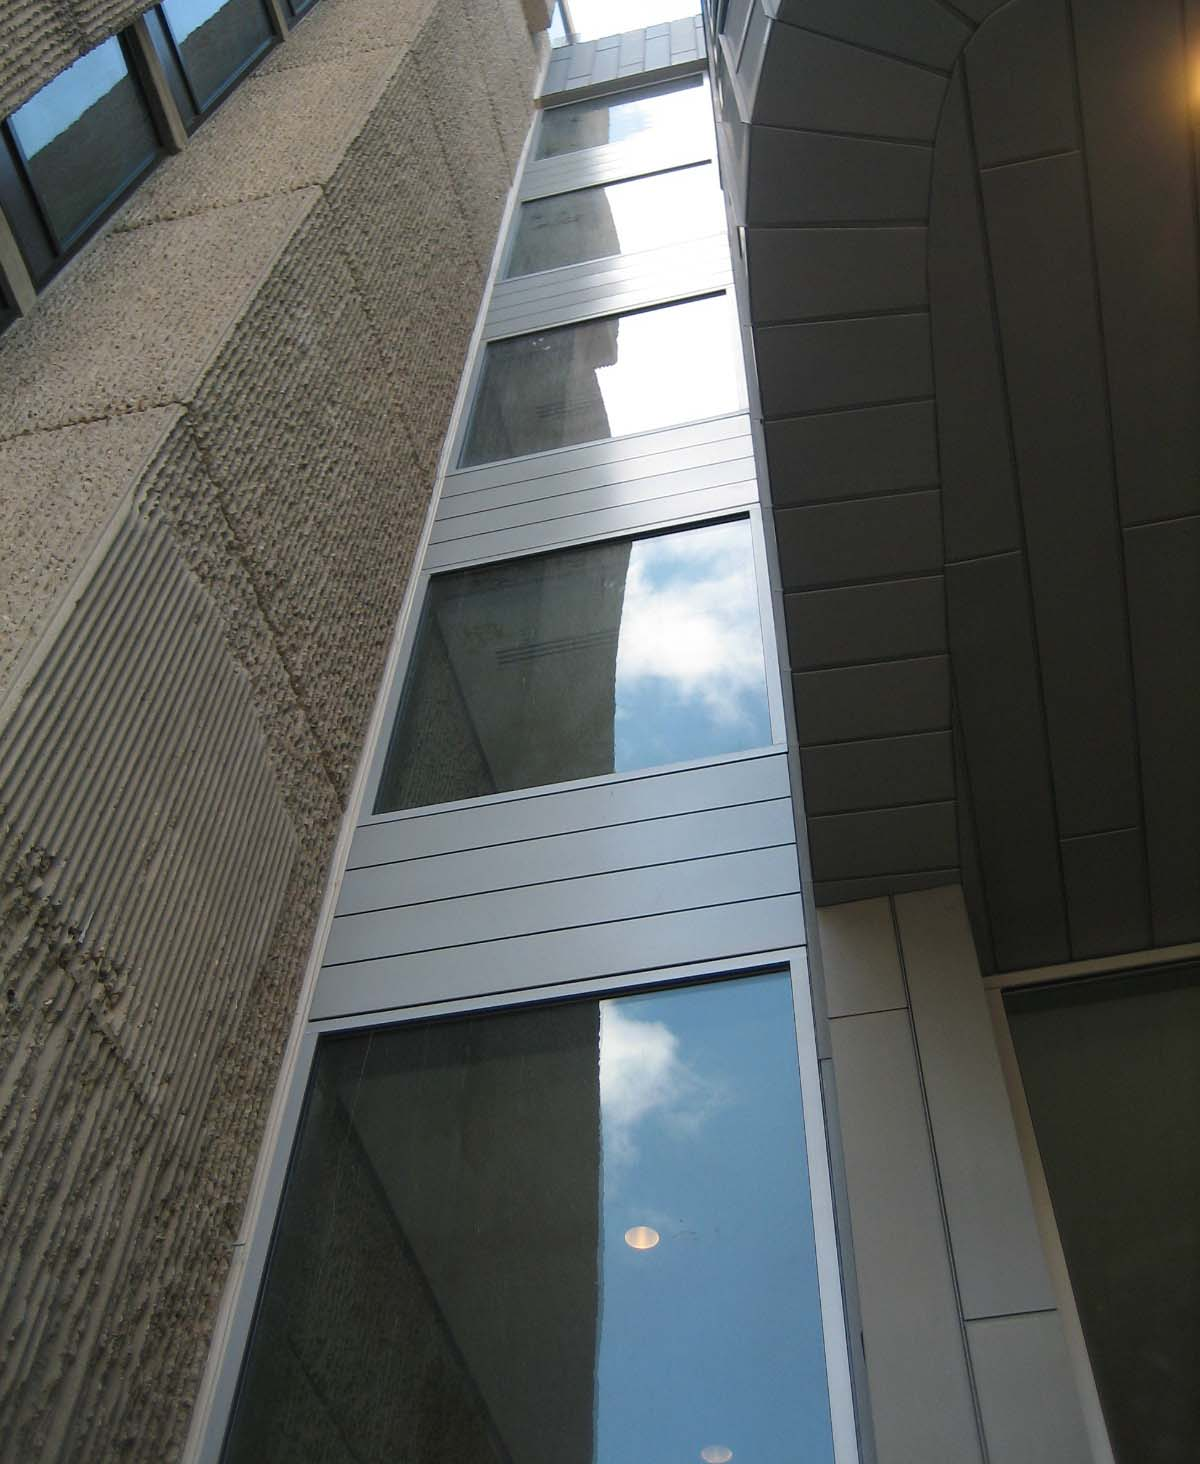 Metal Work Photos Industrial Architectural Residential: Projects By Barrett Inc.